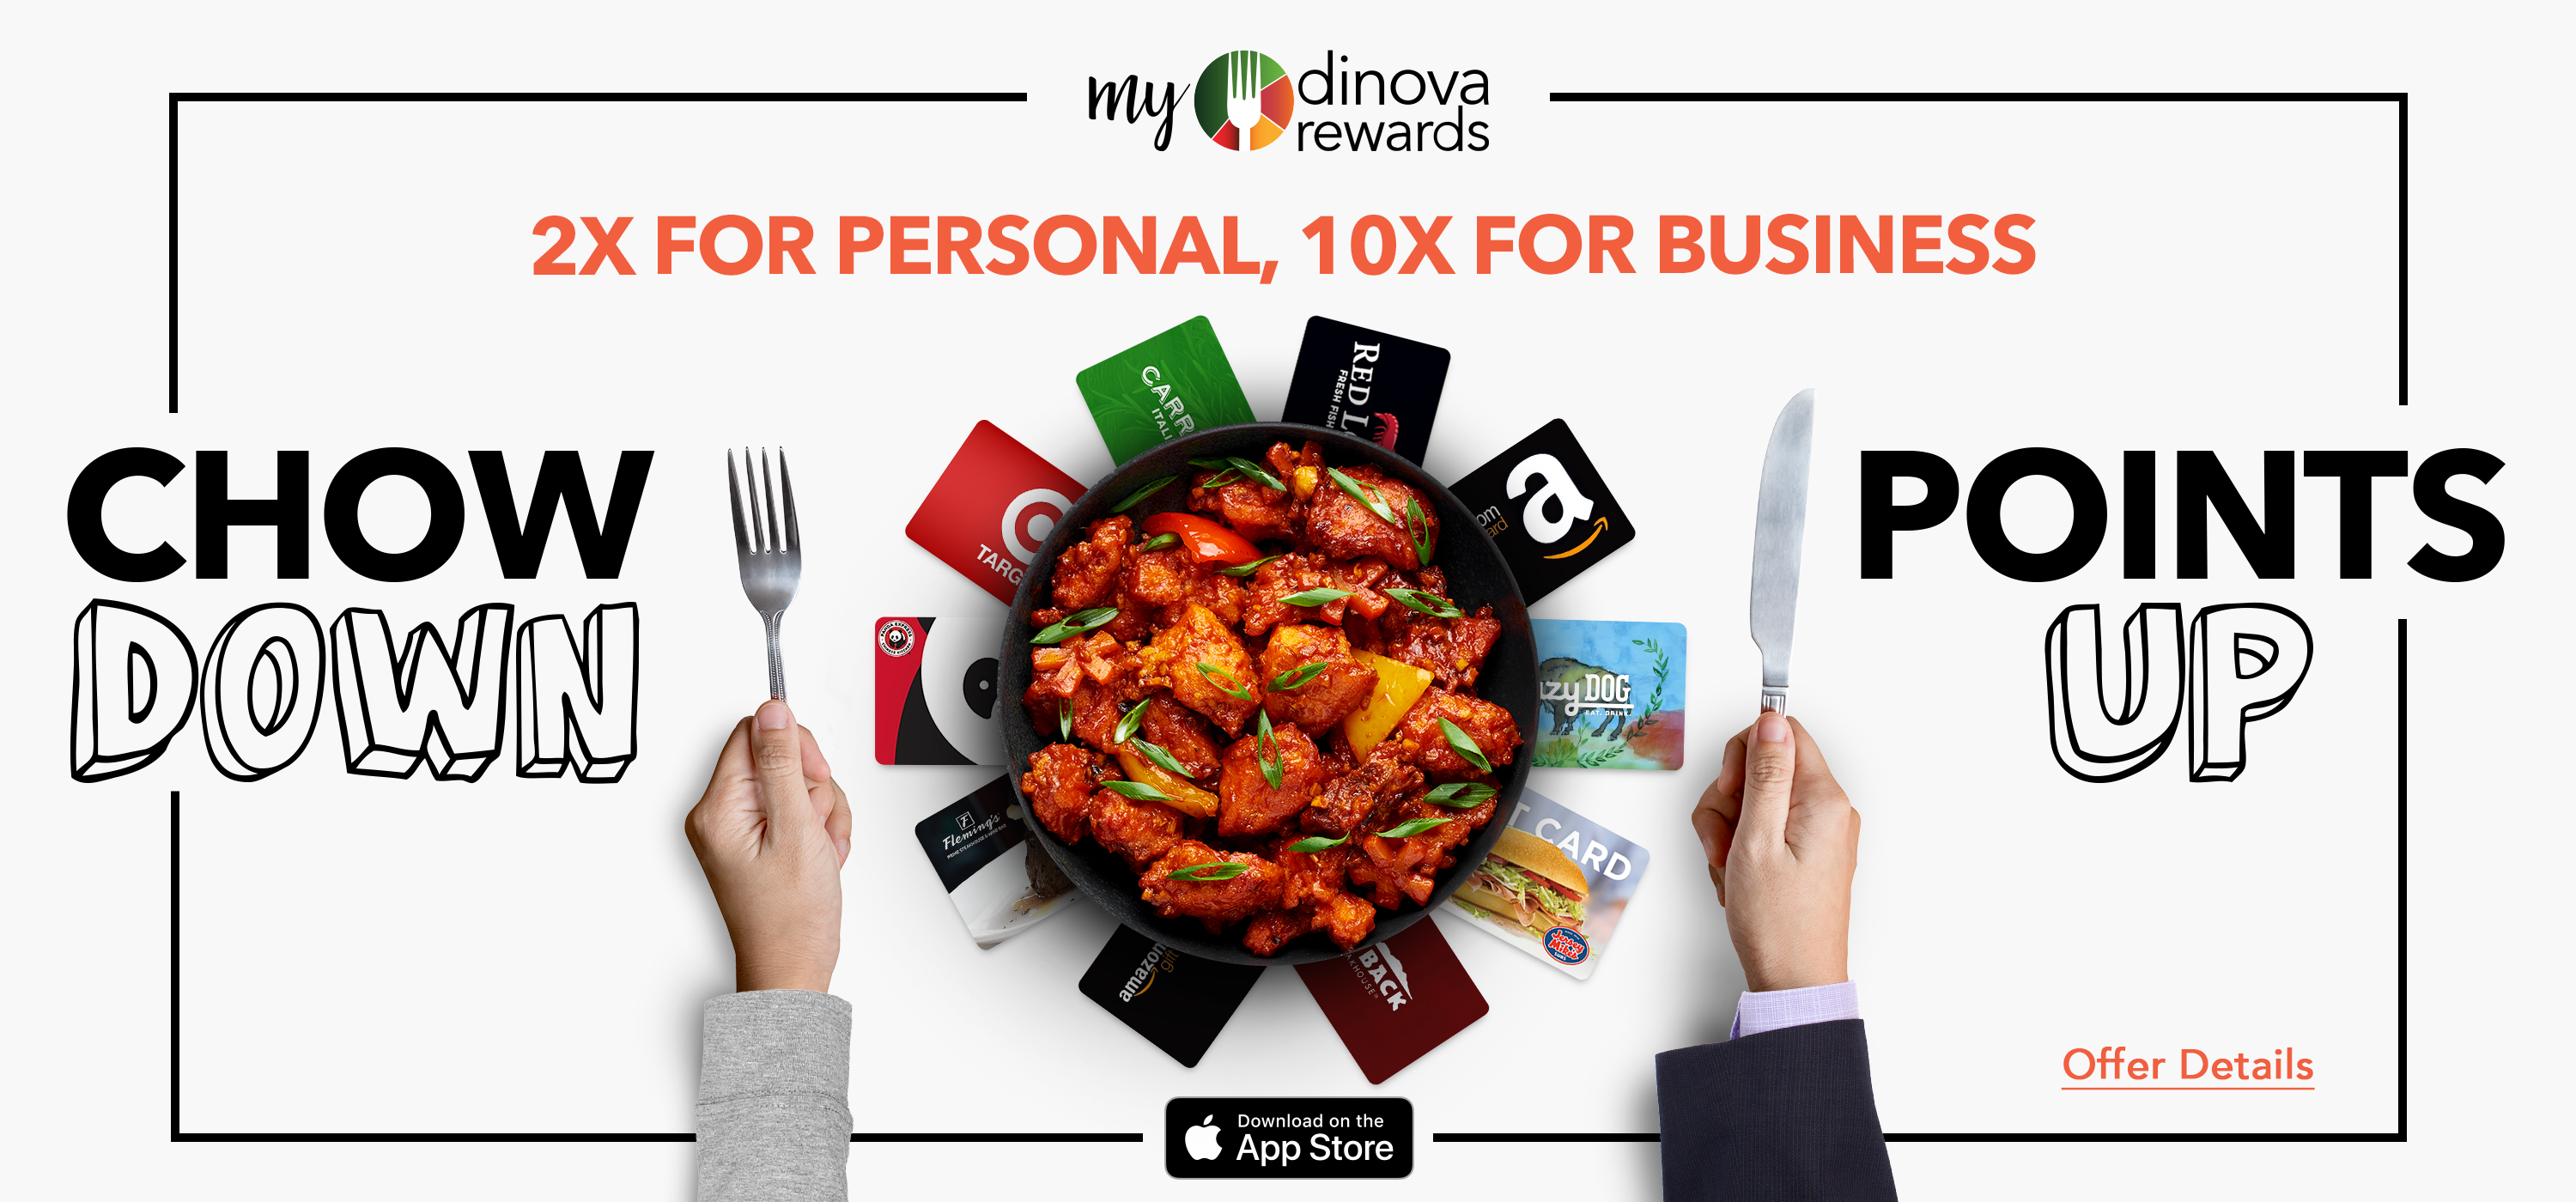 myDinova bonus points offers, 2x personal, 10x business